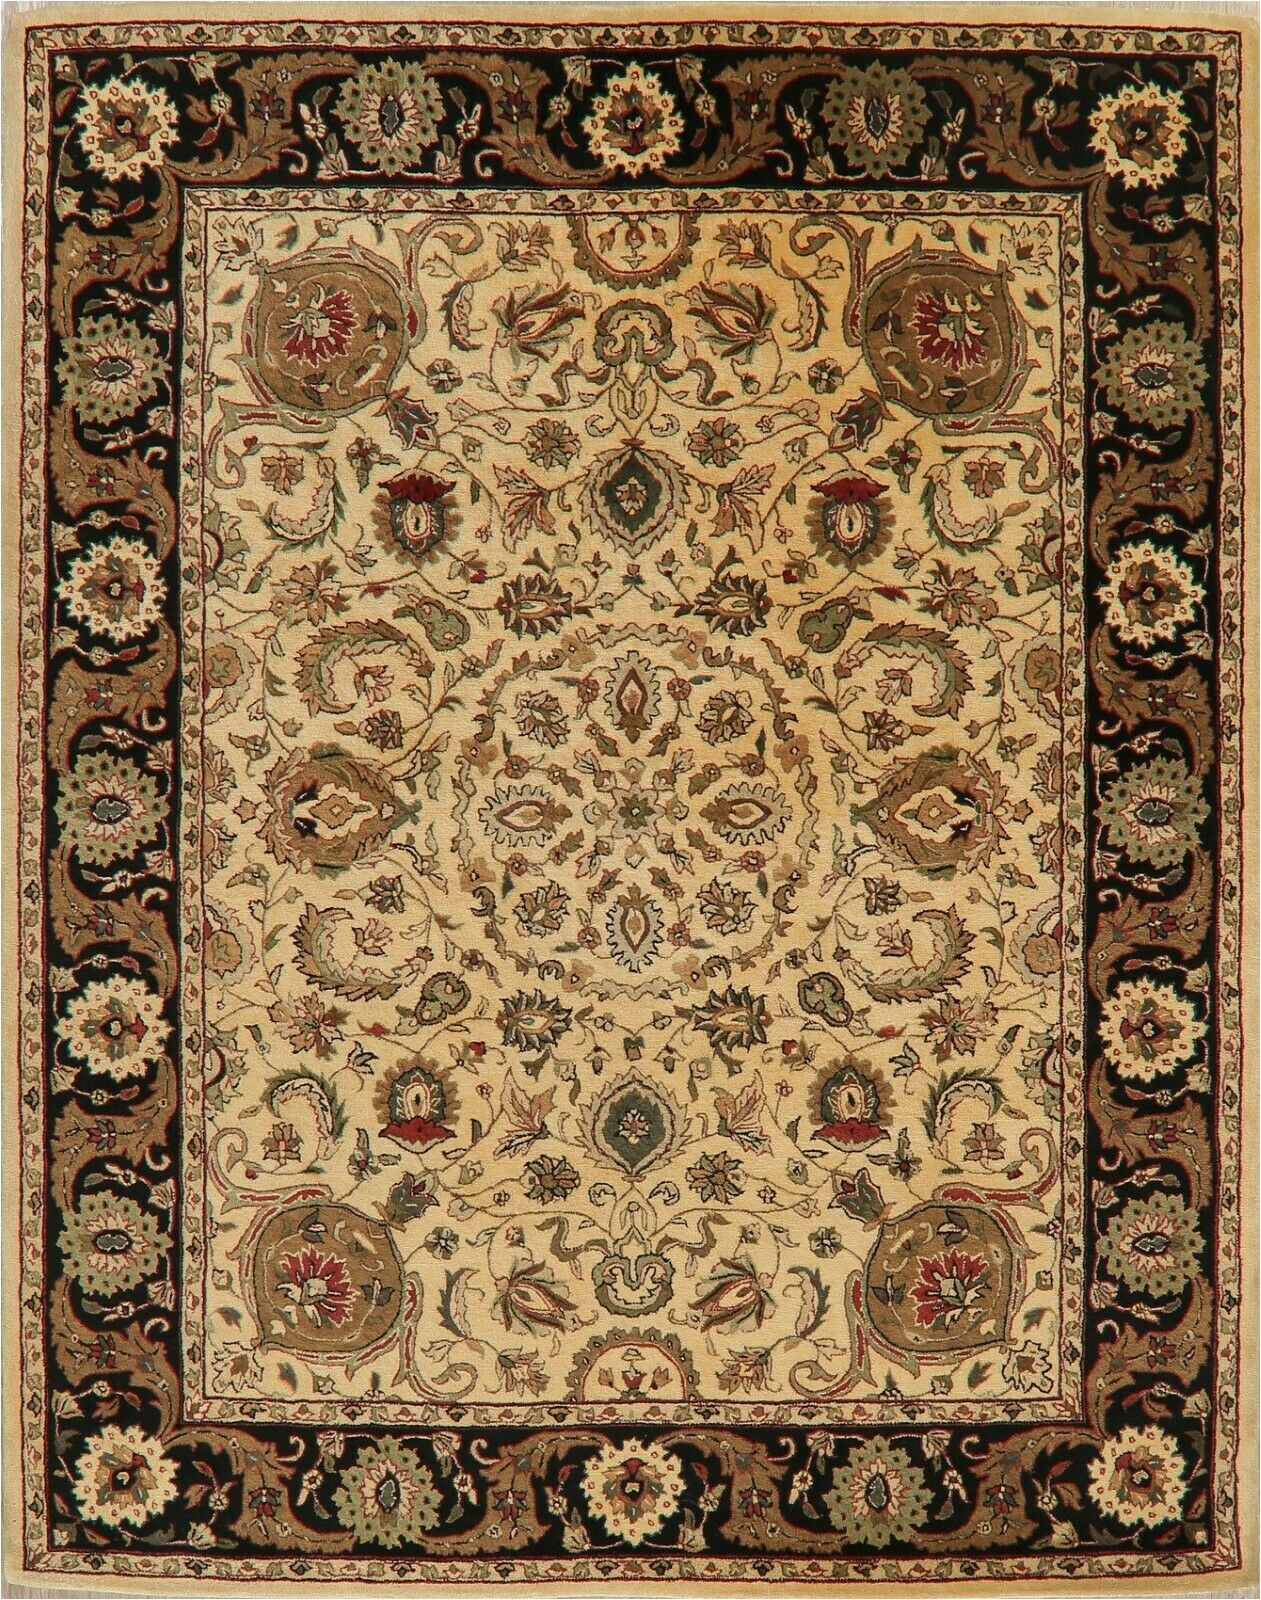 Safavieh Stratford Collection Wool area Rug Ivory & Black Floral Agra oriental area Rug Wool Hand Tufted Living Room 8 X10